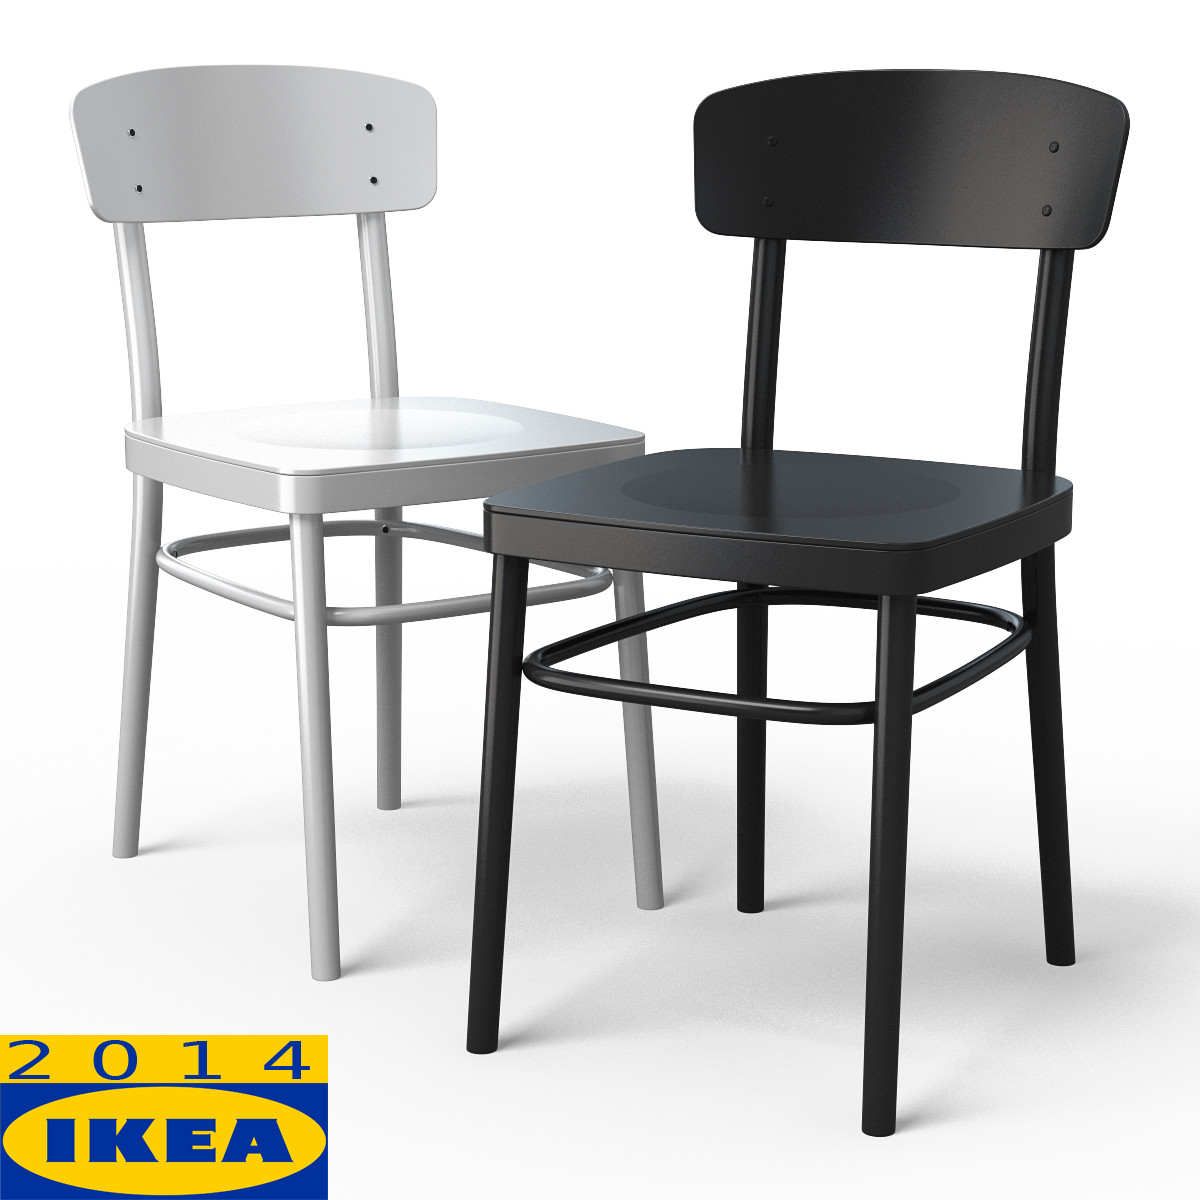 ikea pello chair pro engineer 28 images solidworks tutorials on behance before after ikea. Black Bedroom Furniture Sets. Home Design Ideas